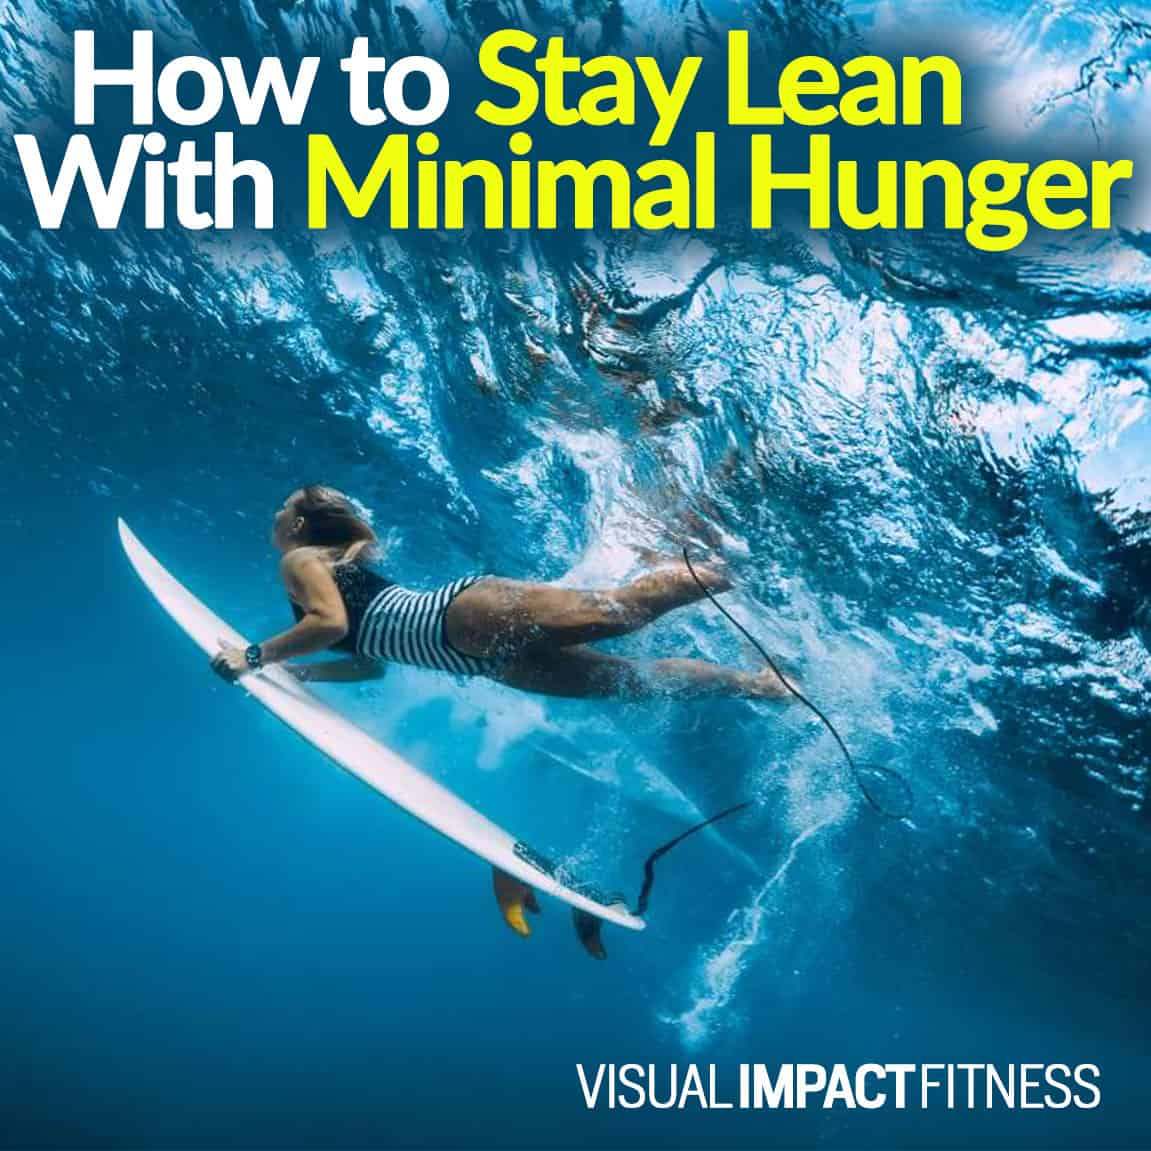 How to Stay Lean With Minimal Hunger